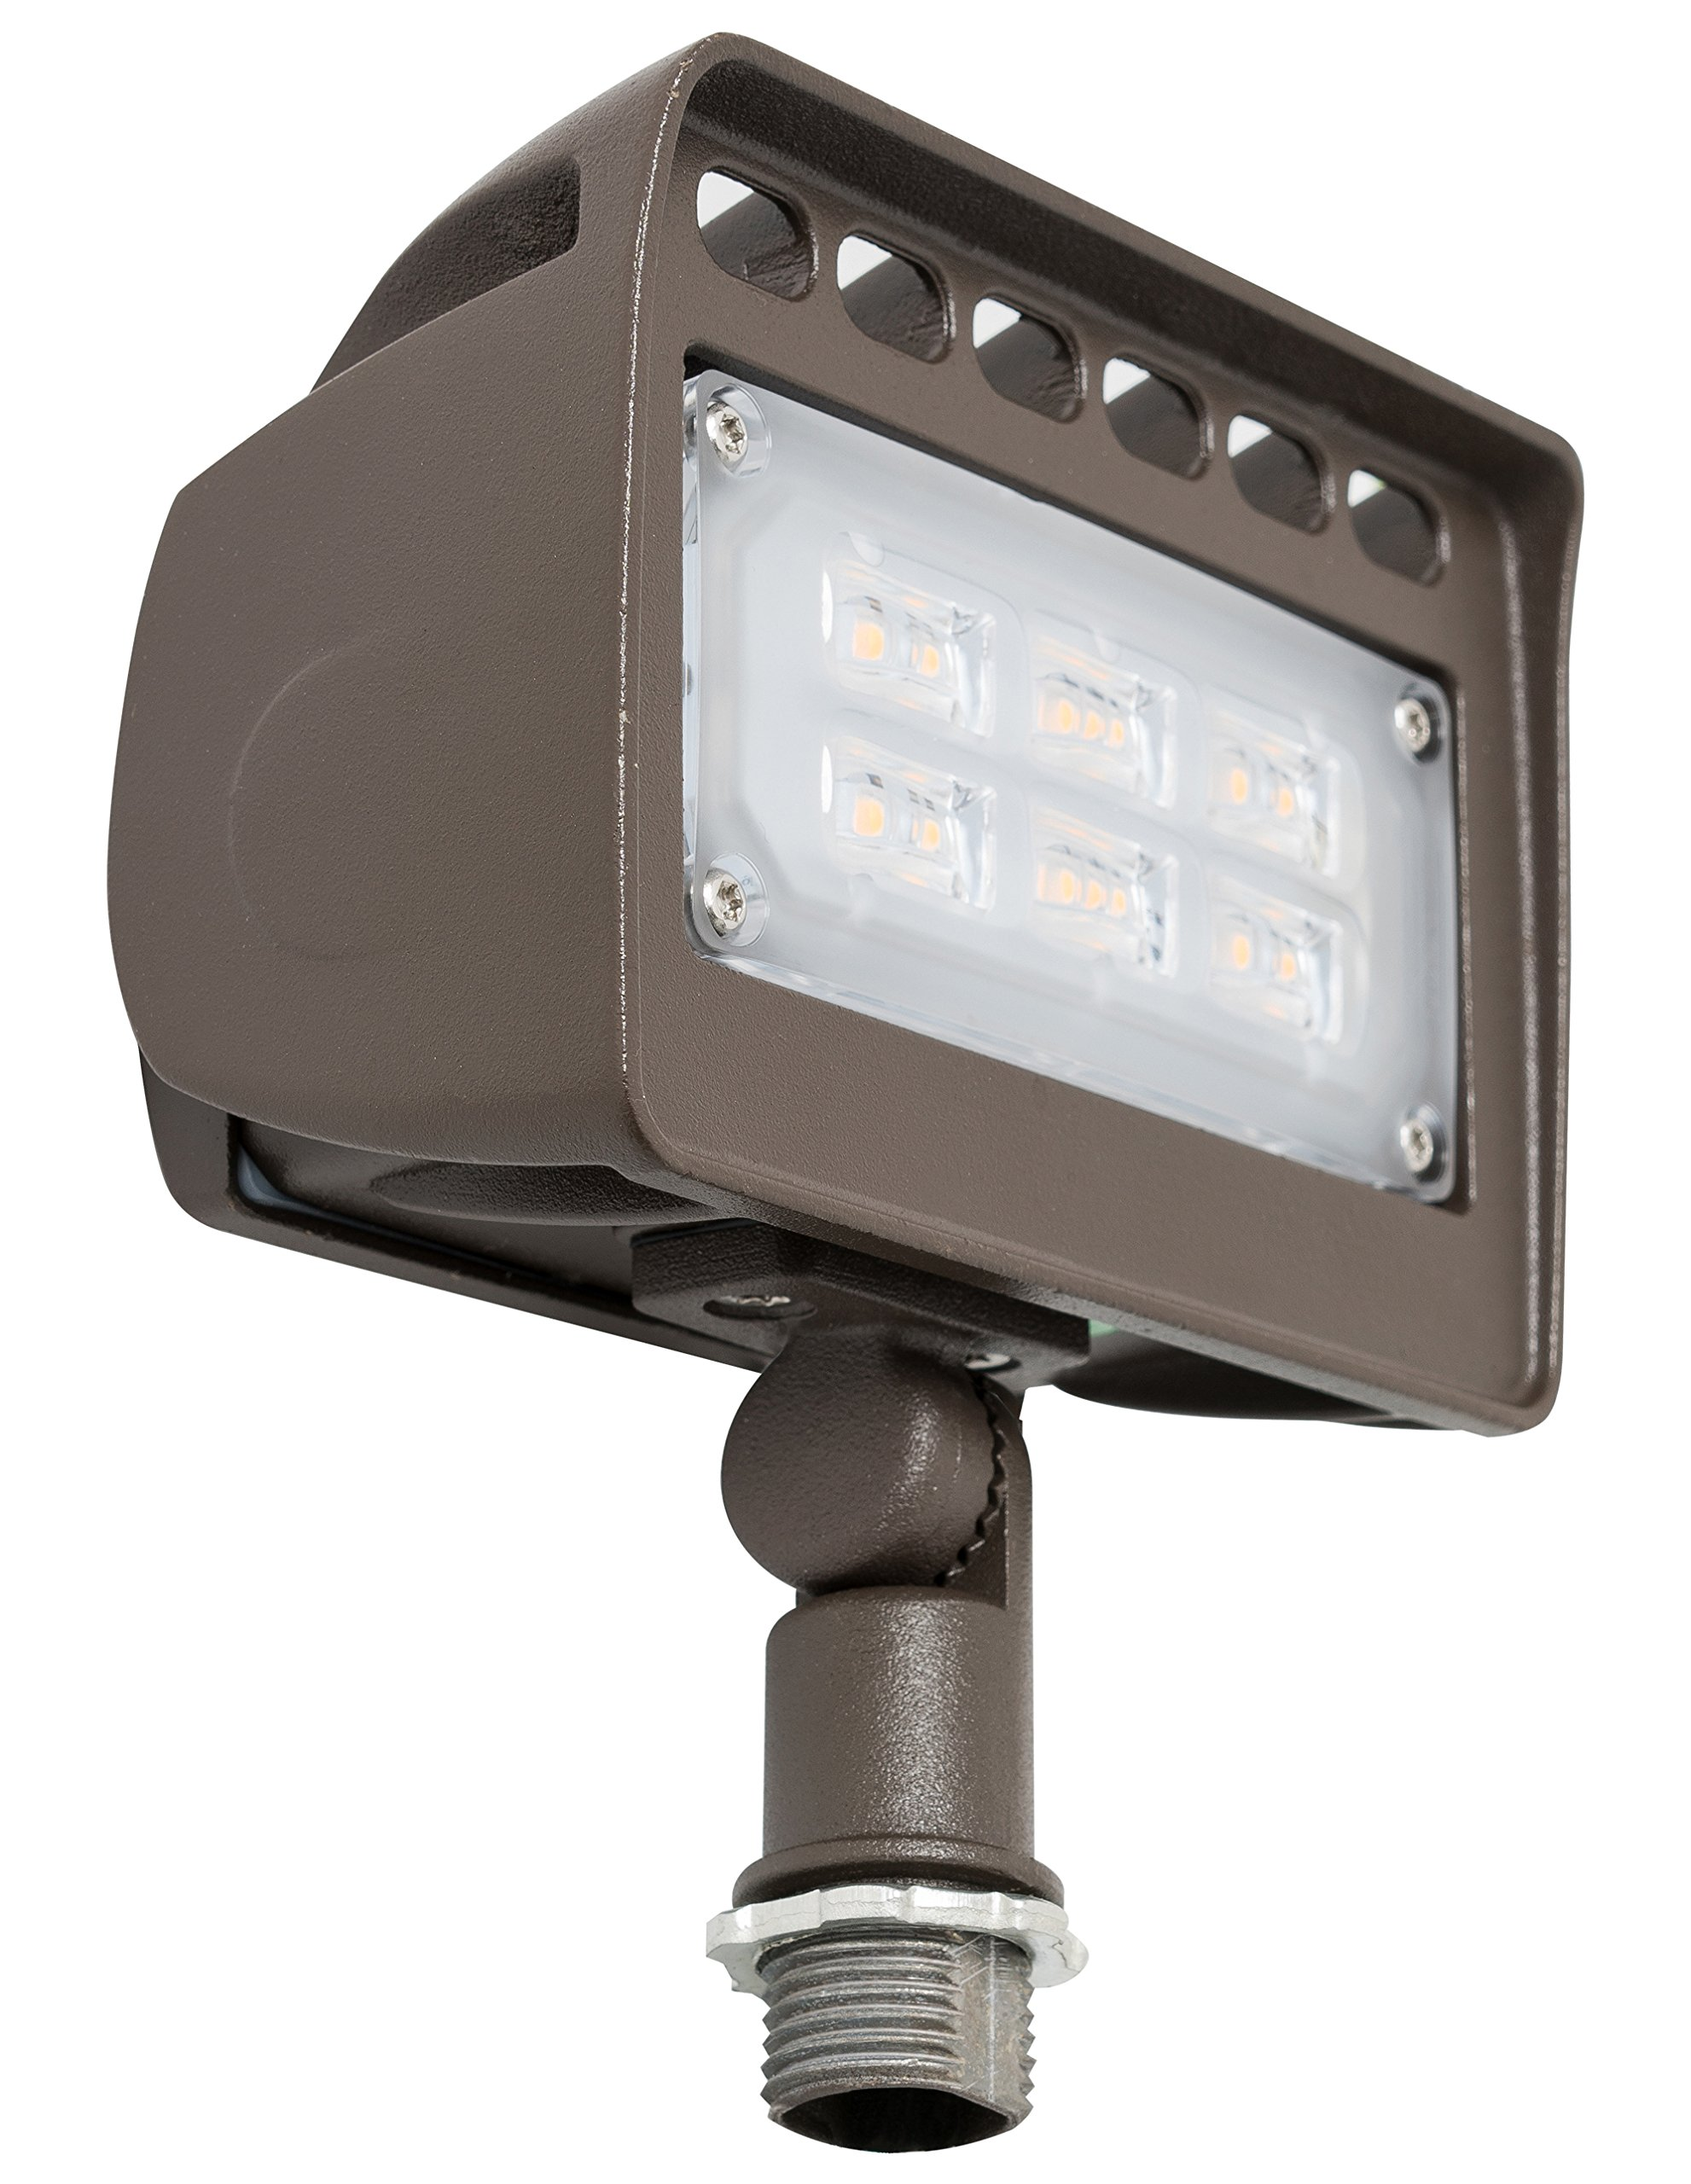 Westgate Lighting LED Flood Light With Knuckle Mount – Best Security Floodlight Fixture For Outdoor, Yard, Landscape, Garden Lights – Safety Floodlights - UL Listed (12 Watt, 3000K Warm White)